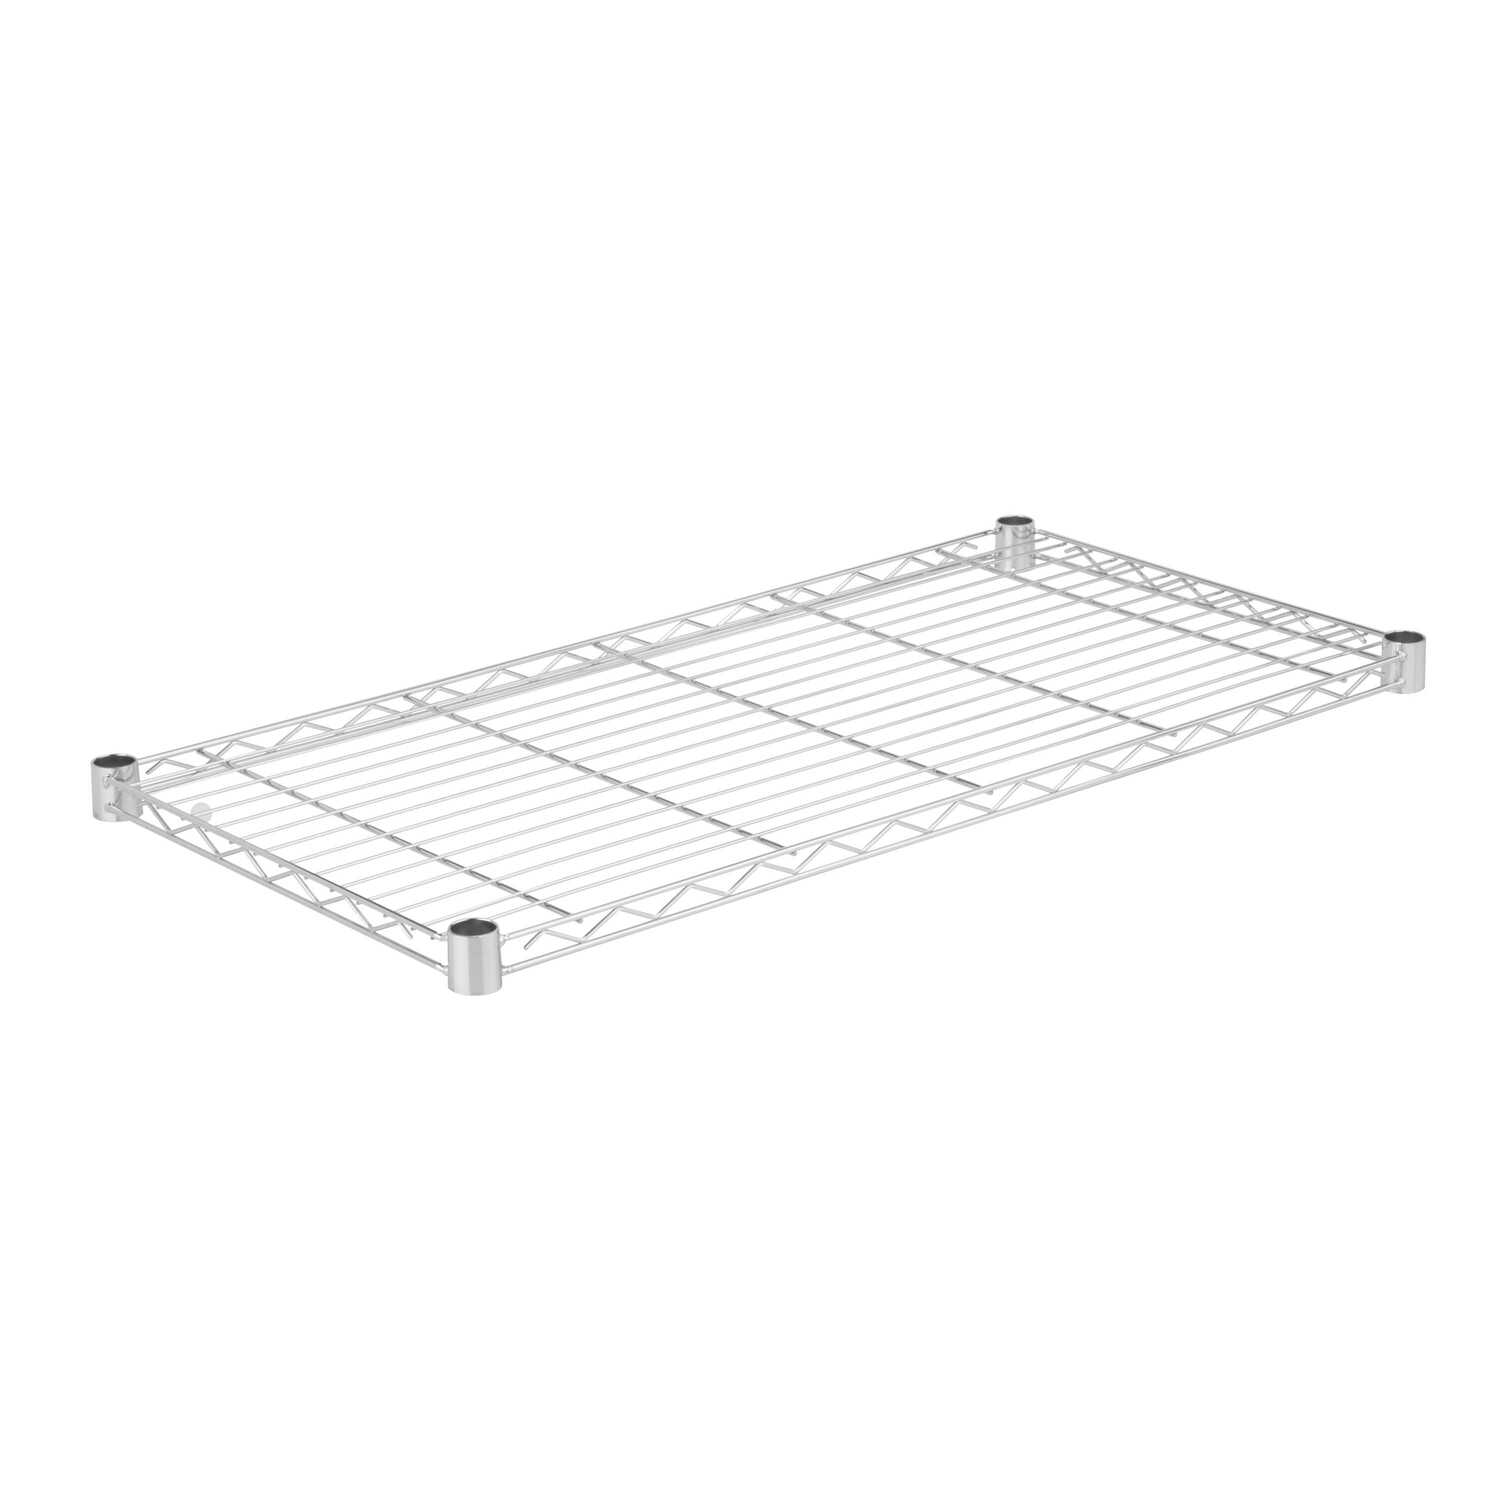 Honey Can Do  1 in. H x 36 in. W x 18 in. D Steel  Shelf Rack  Silver